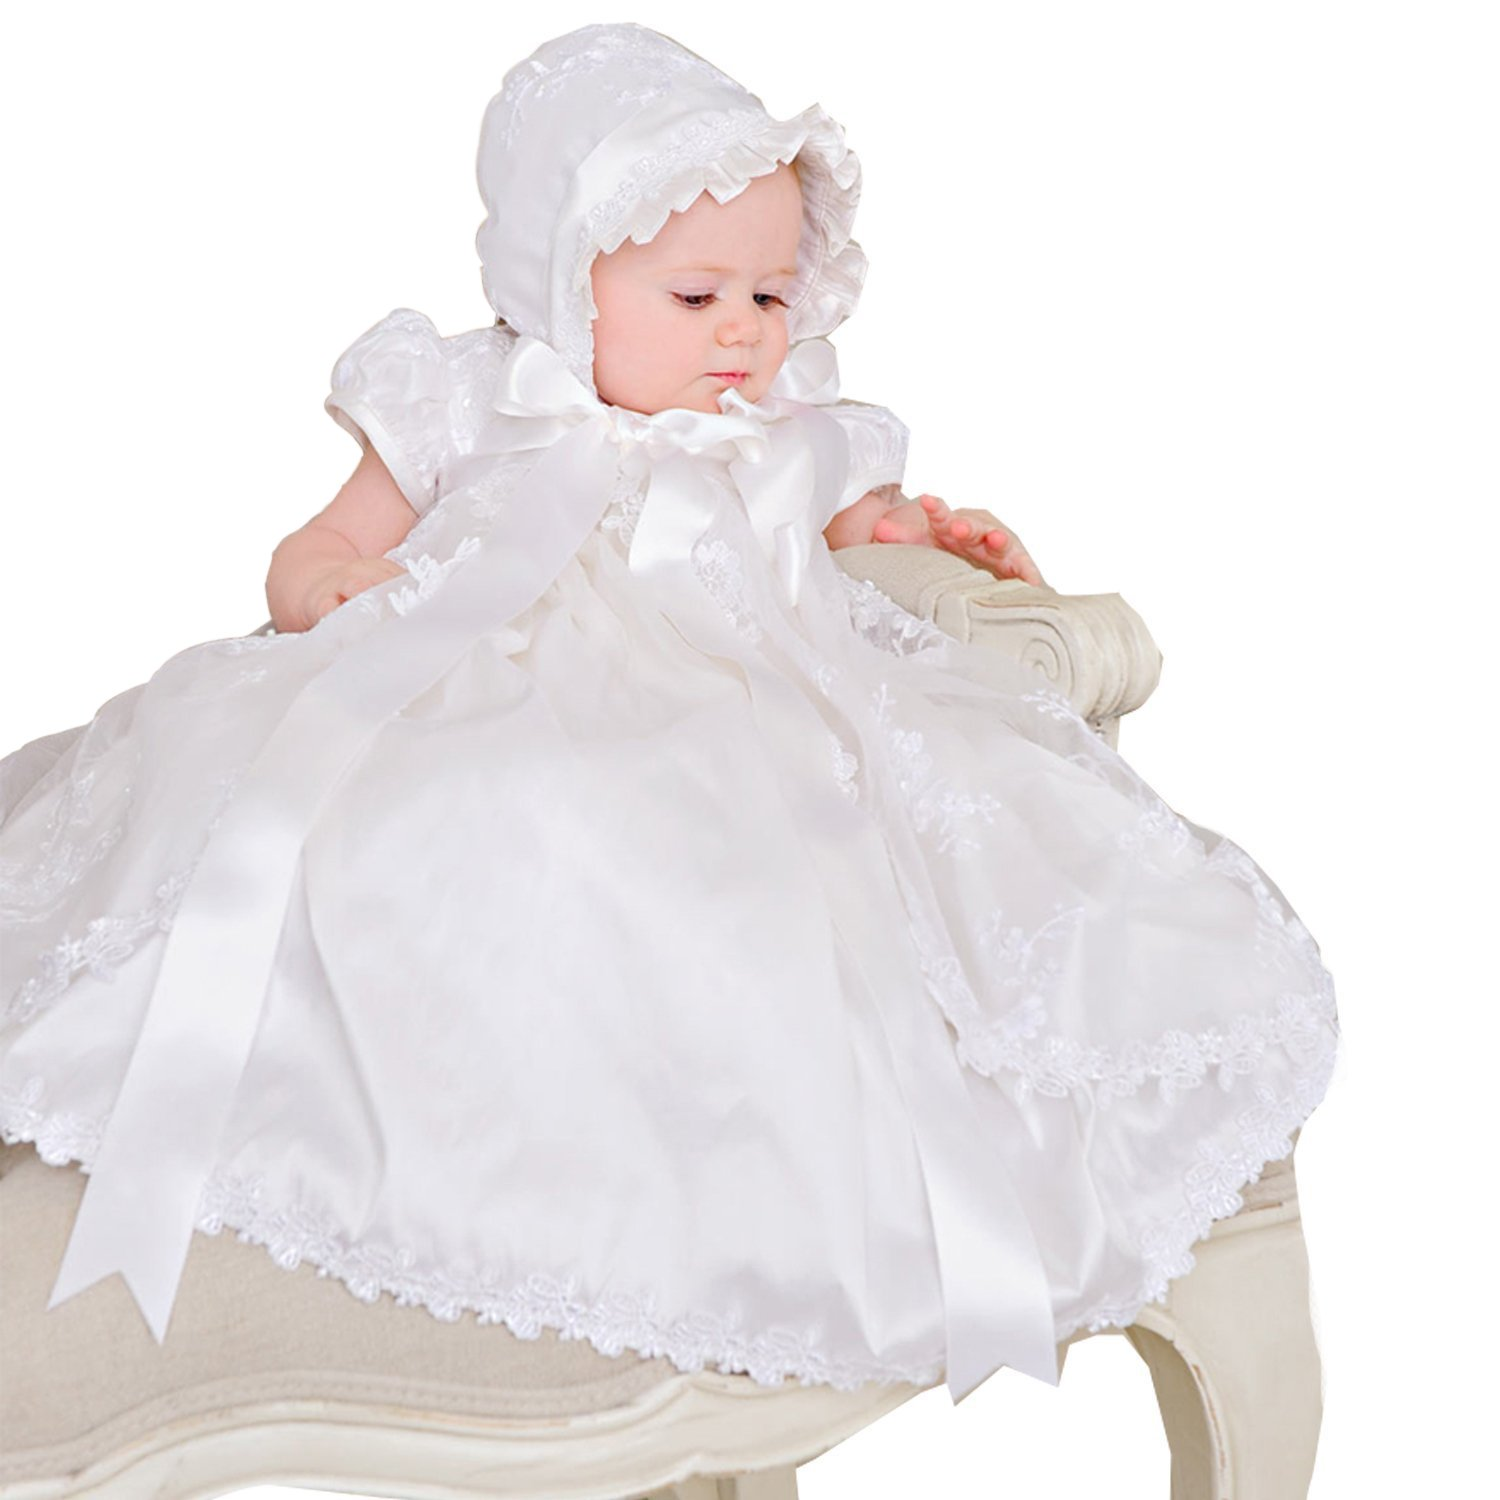 Pretydress Babygirl Lace White Christening Gown Baptism Dress with Bonnet